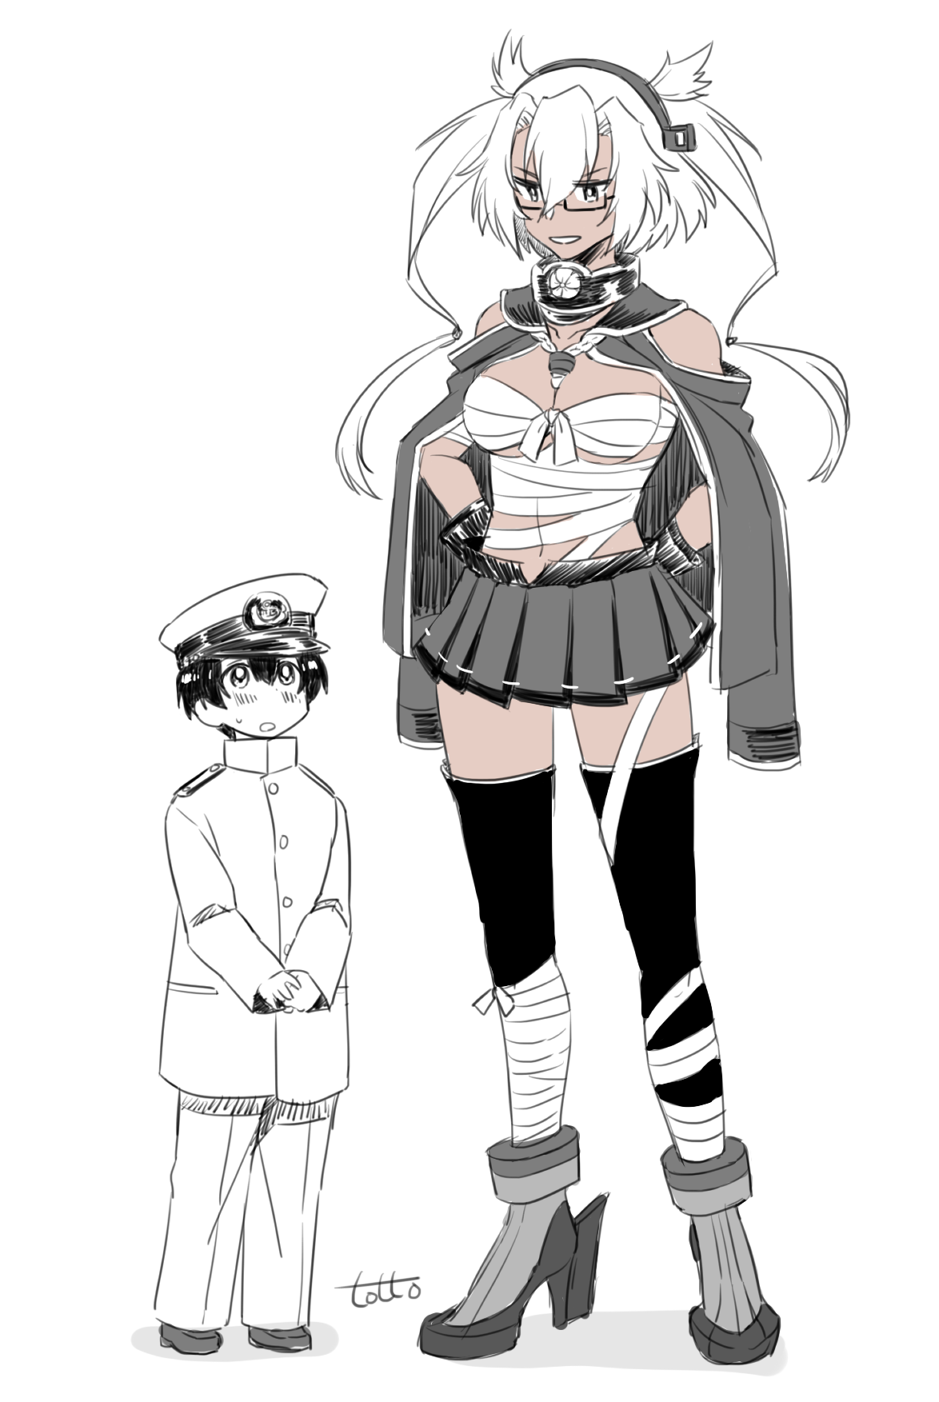 1boy 1girl age_difference artist_name bangs bare_shoulders black_gloves black_hair blush breasts budget_sarashi collar commentary_request dark_skin eyebrows_visible_through_hair full_body glasses gloves hair_between_eyes hands_on_hips hat headgear height_difference highres jacket kantai_collection large_breasts little_boy_admiral_(kantai_collection) long_hair long_sleeves looking_at_another military military_uniform miniskirt musashi_(kantai_collection) open_mouth partly_fingerless_gloves peaked_cap rudder_footwear sarashi semi-rimless_eyewear shoes short_hair short_hair_with_long_locks simple_background skirt smile thigh-highs totto_(naka) twintails two_side_up under-rim_eyewear uniform white_background white_hair